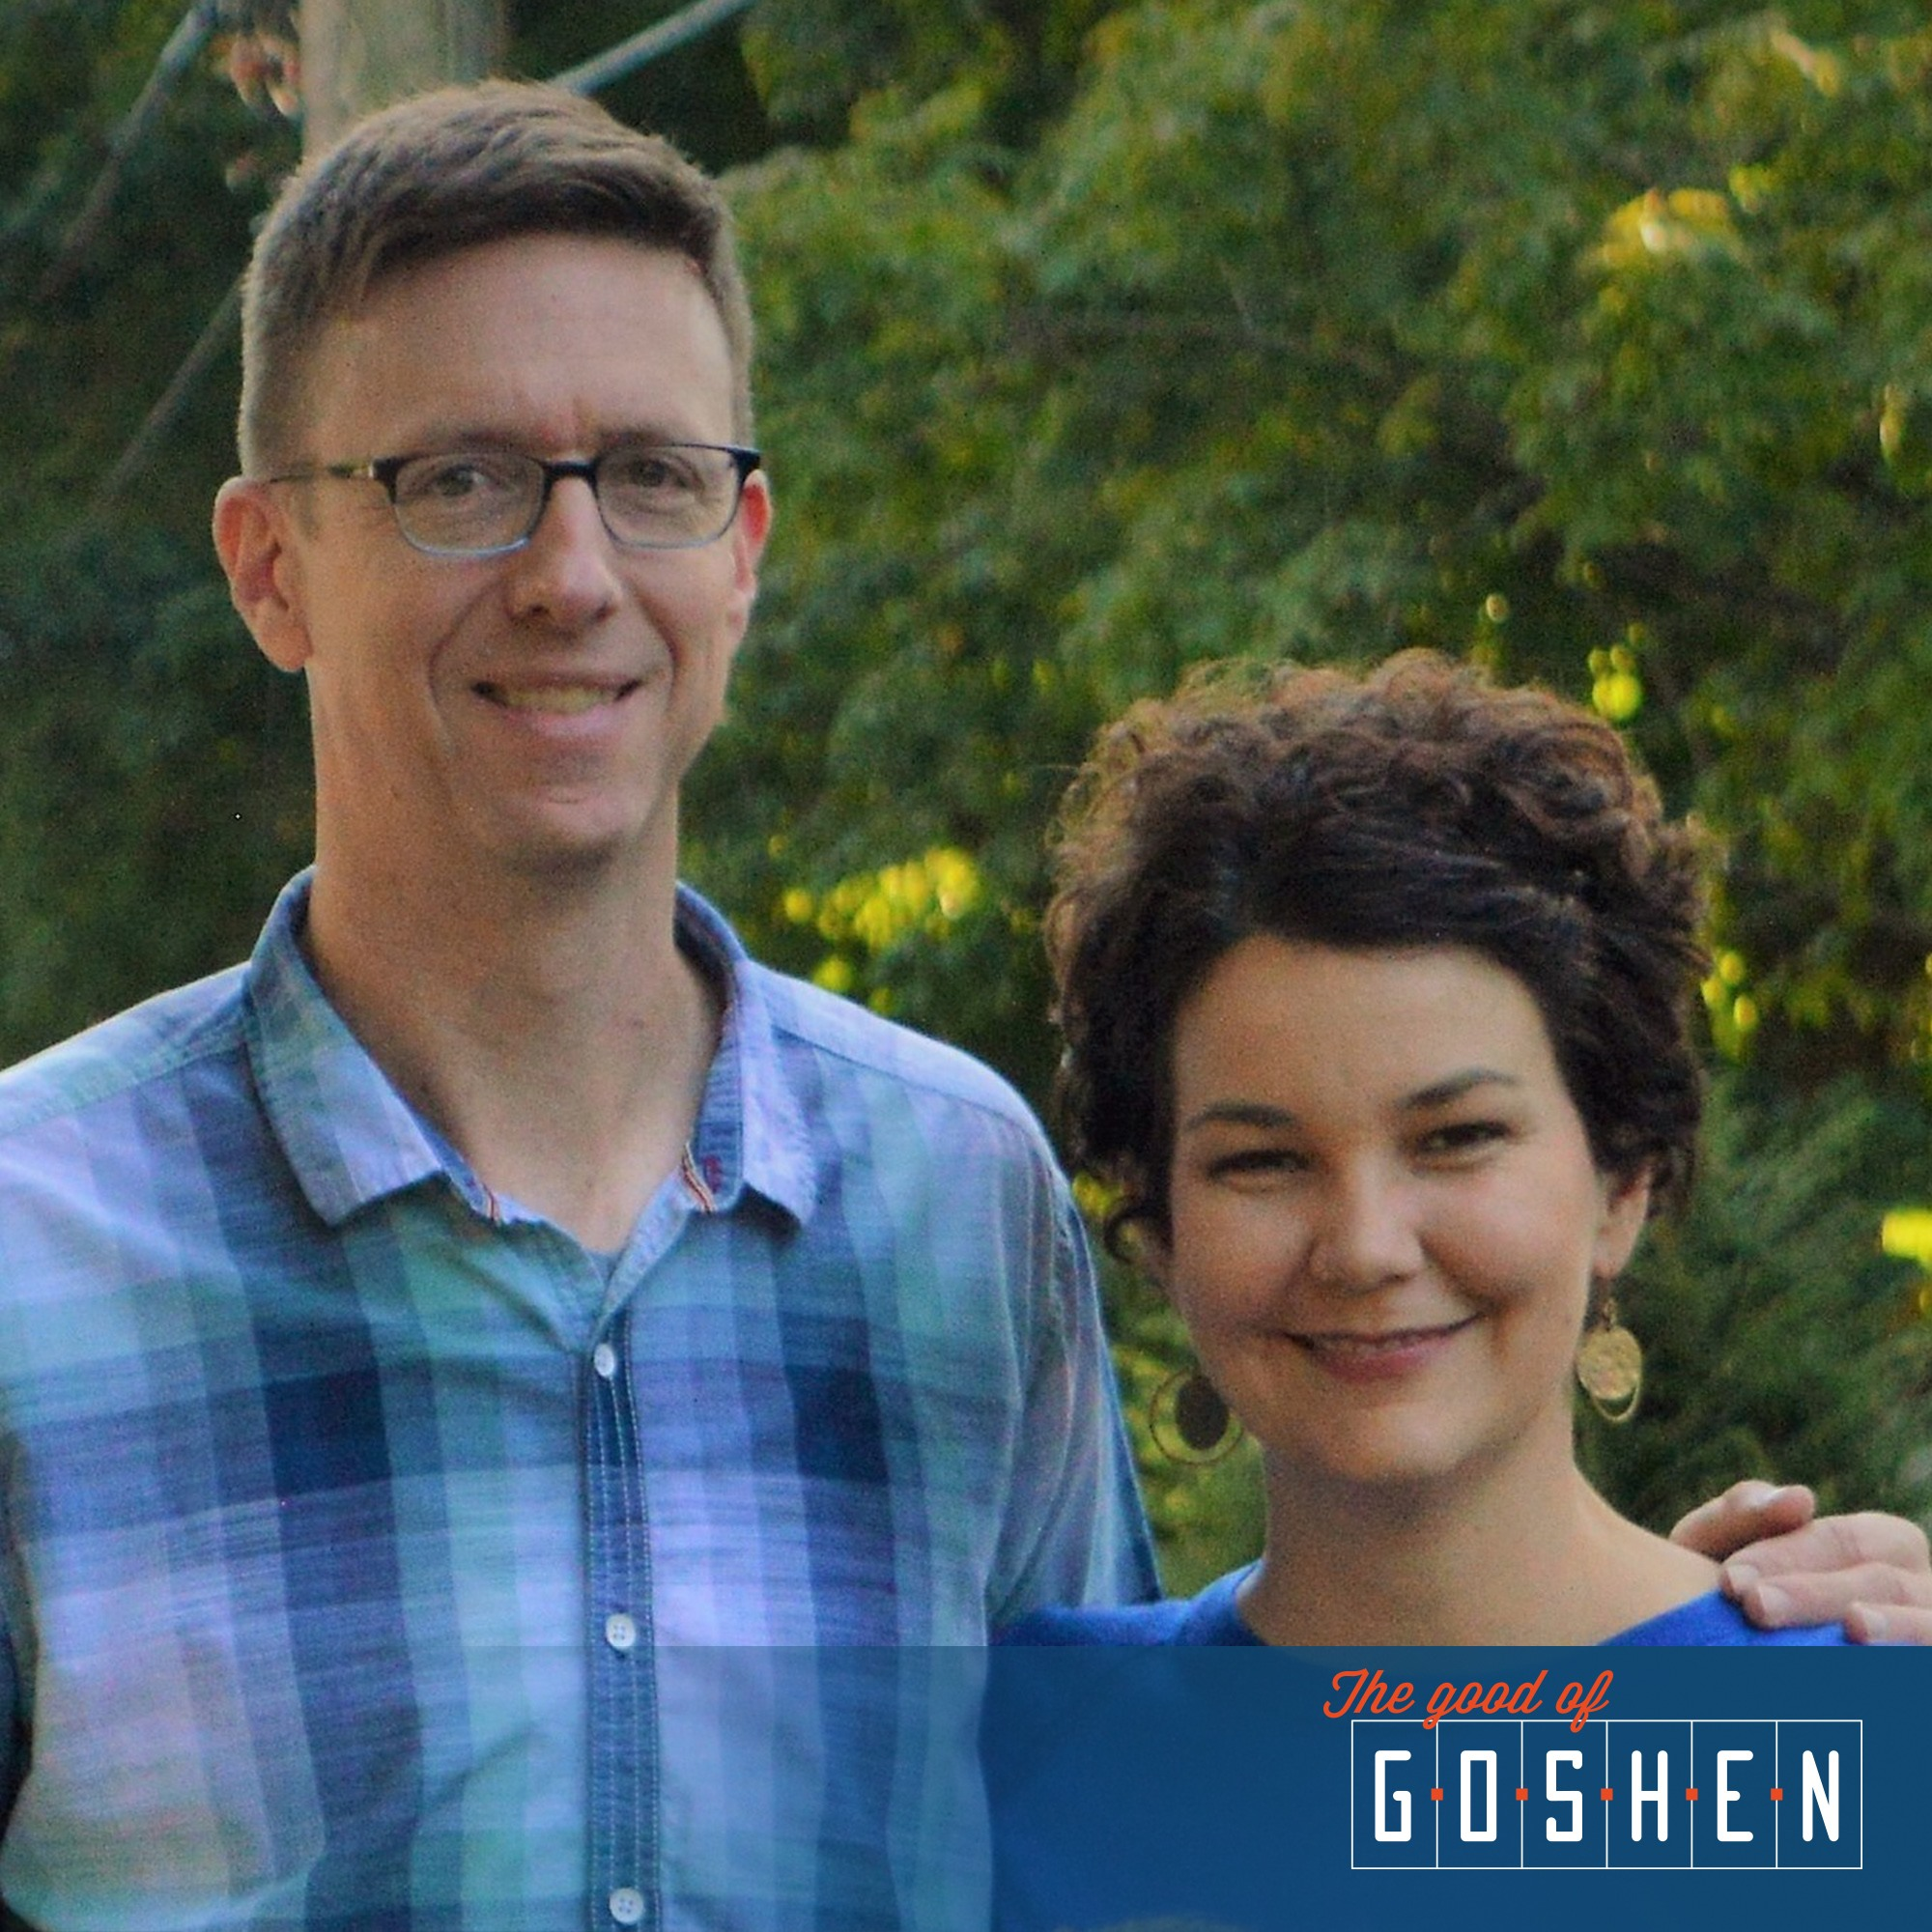 Nate Osborne and Kathleen Jones • The Good of Goshen